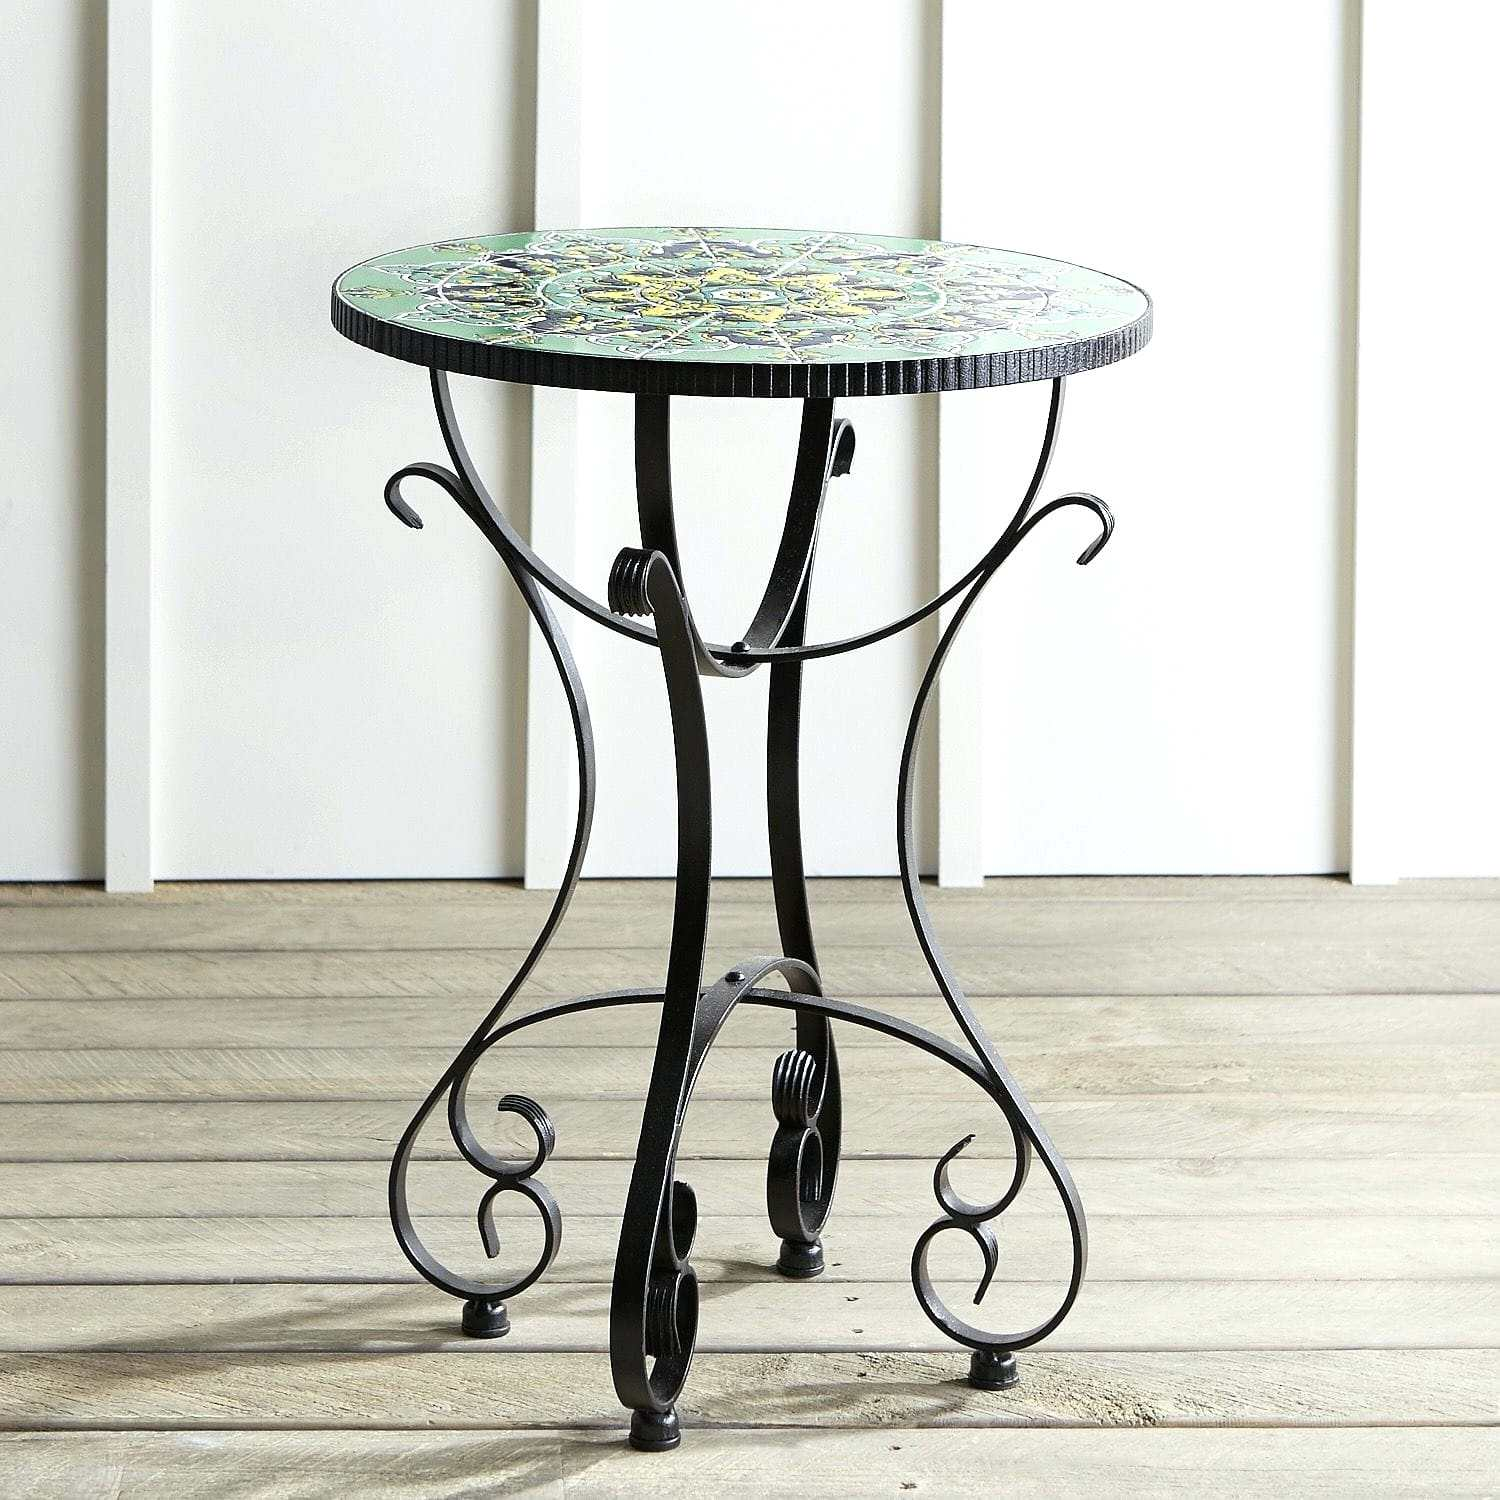 teal accent table small round fretwork blue dale tiffany glass wall art tile patio outdoor furniture changing pad macys coffee modern tables sofa and end hobby lobby metal diy